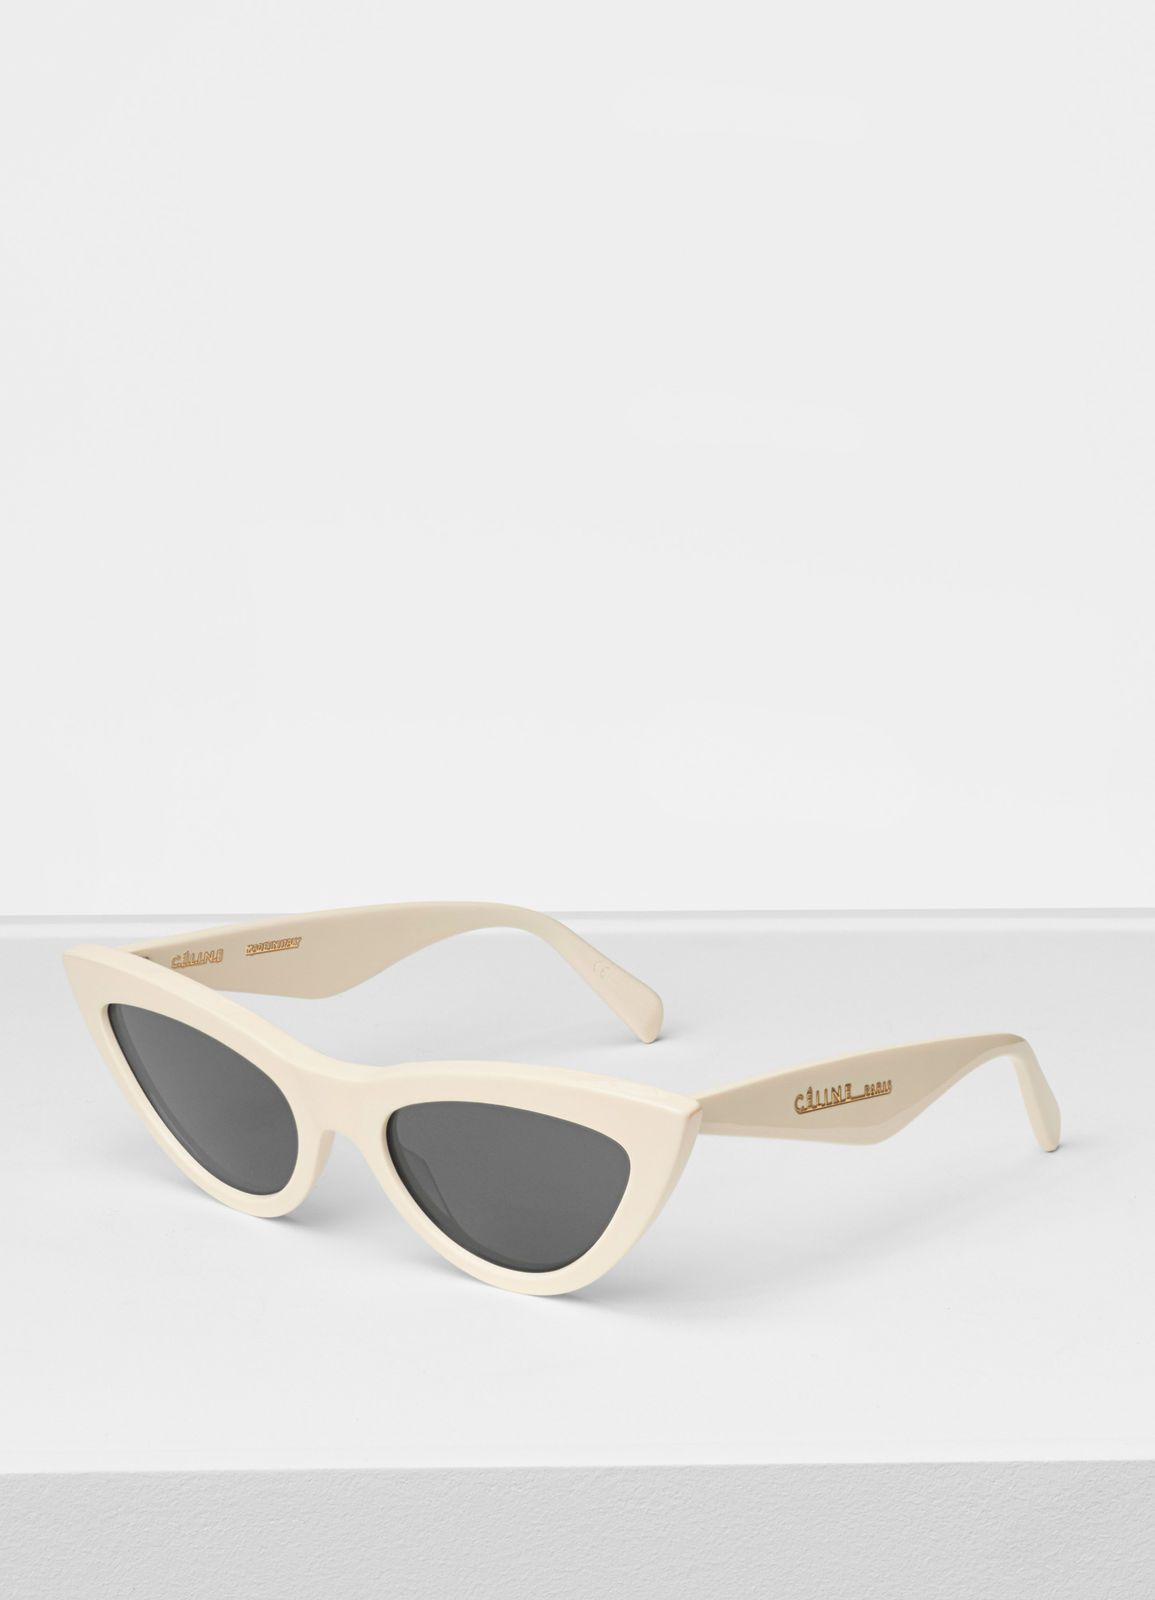 741a487d805 Céline - Ivory Cat Eye sunglasses in acetate